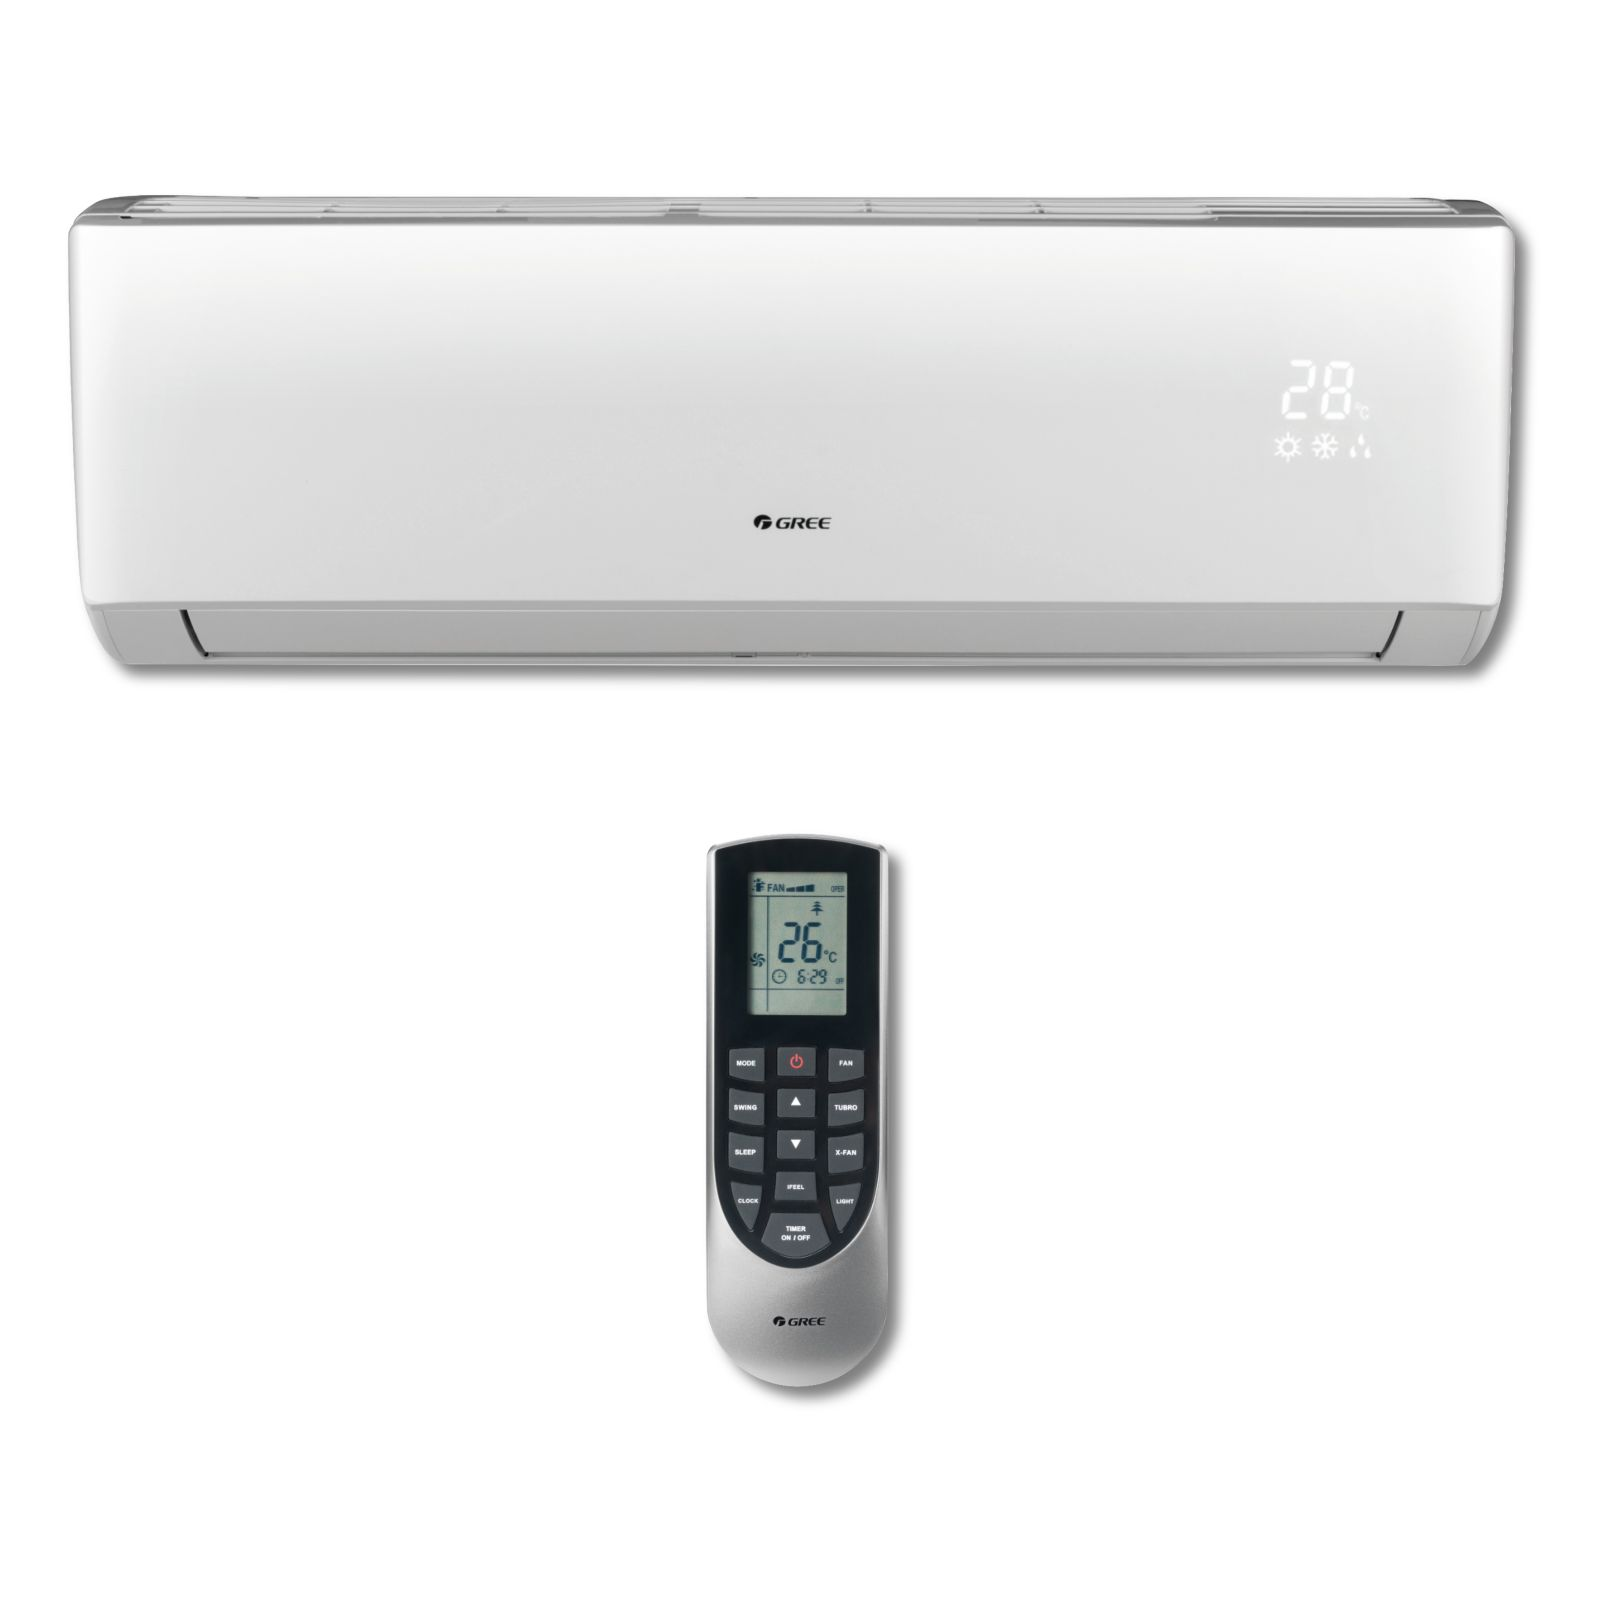 GREE VIR36HP230V1AH - Vireo 36,000 BTU Wall Mounted Inverter Heat Pump Indoor Unit